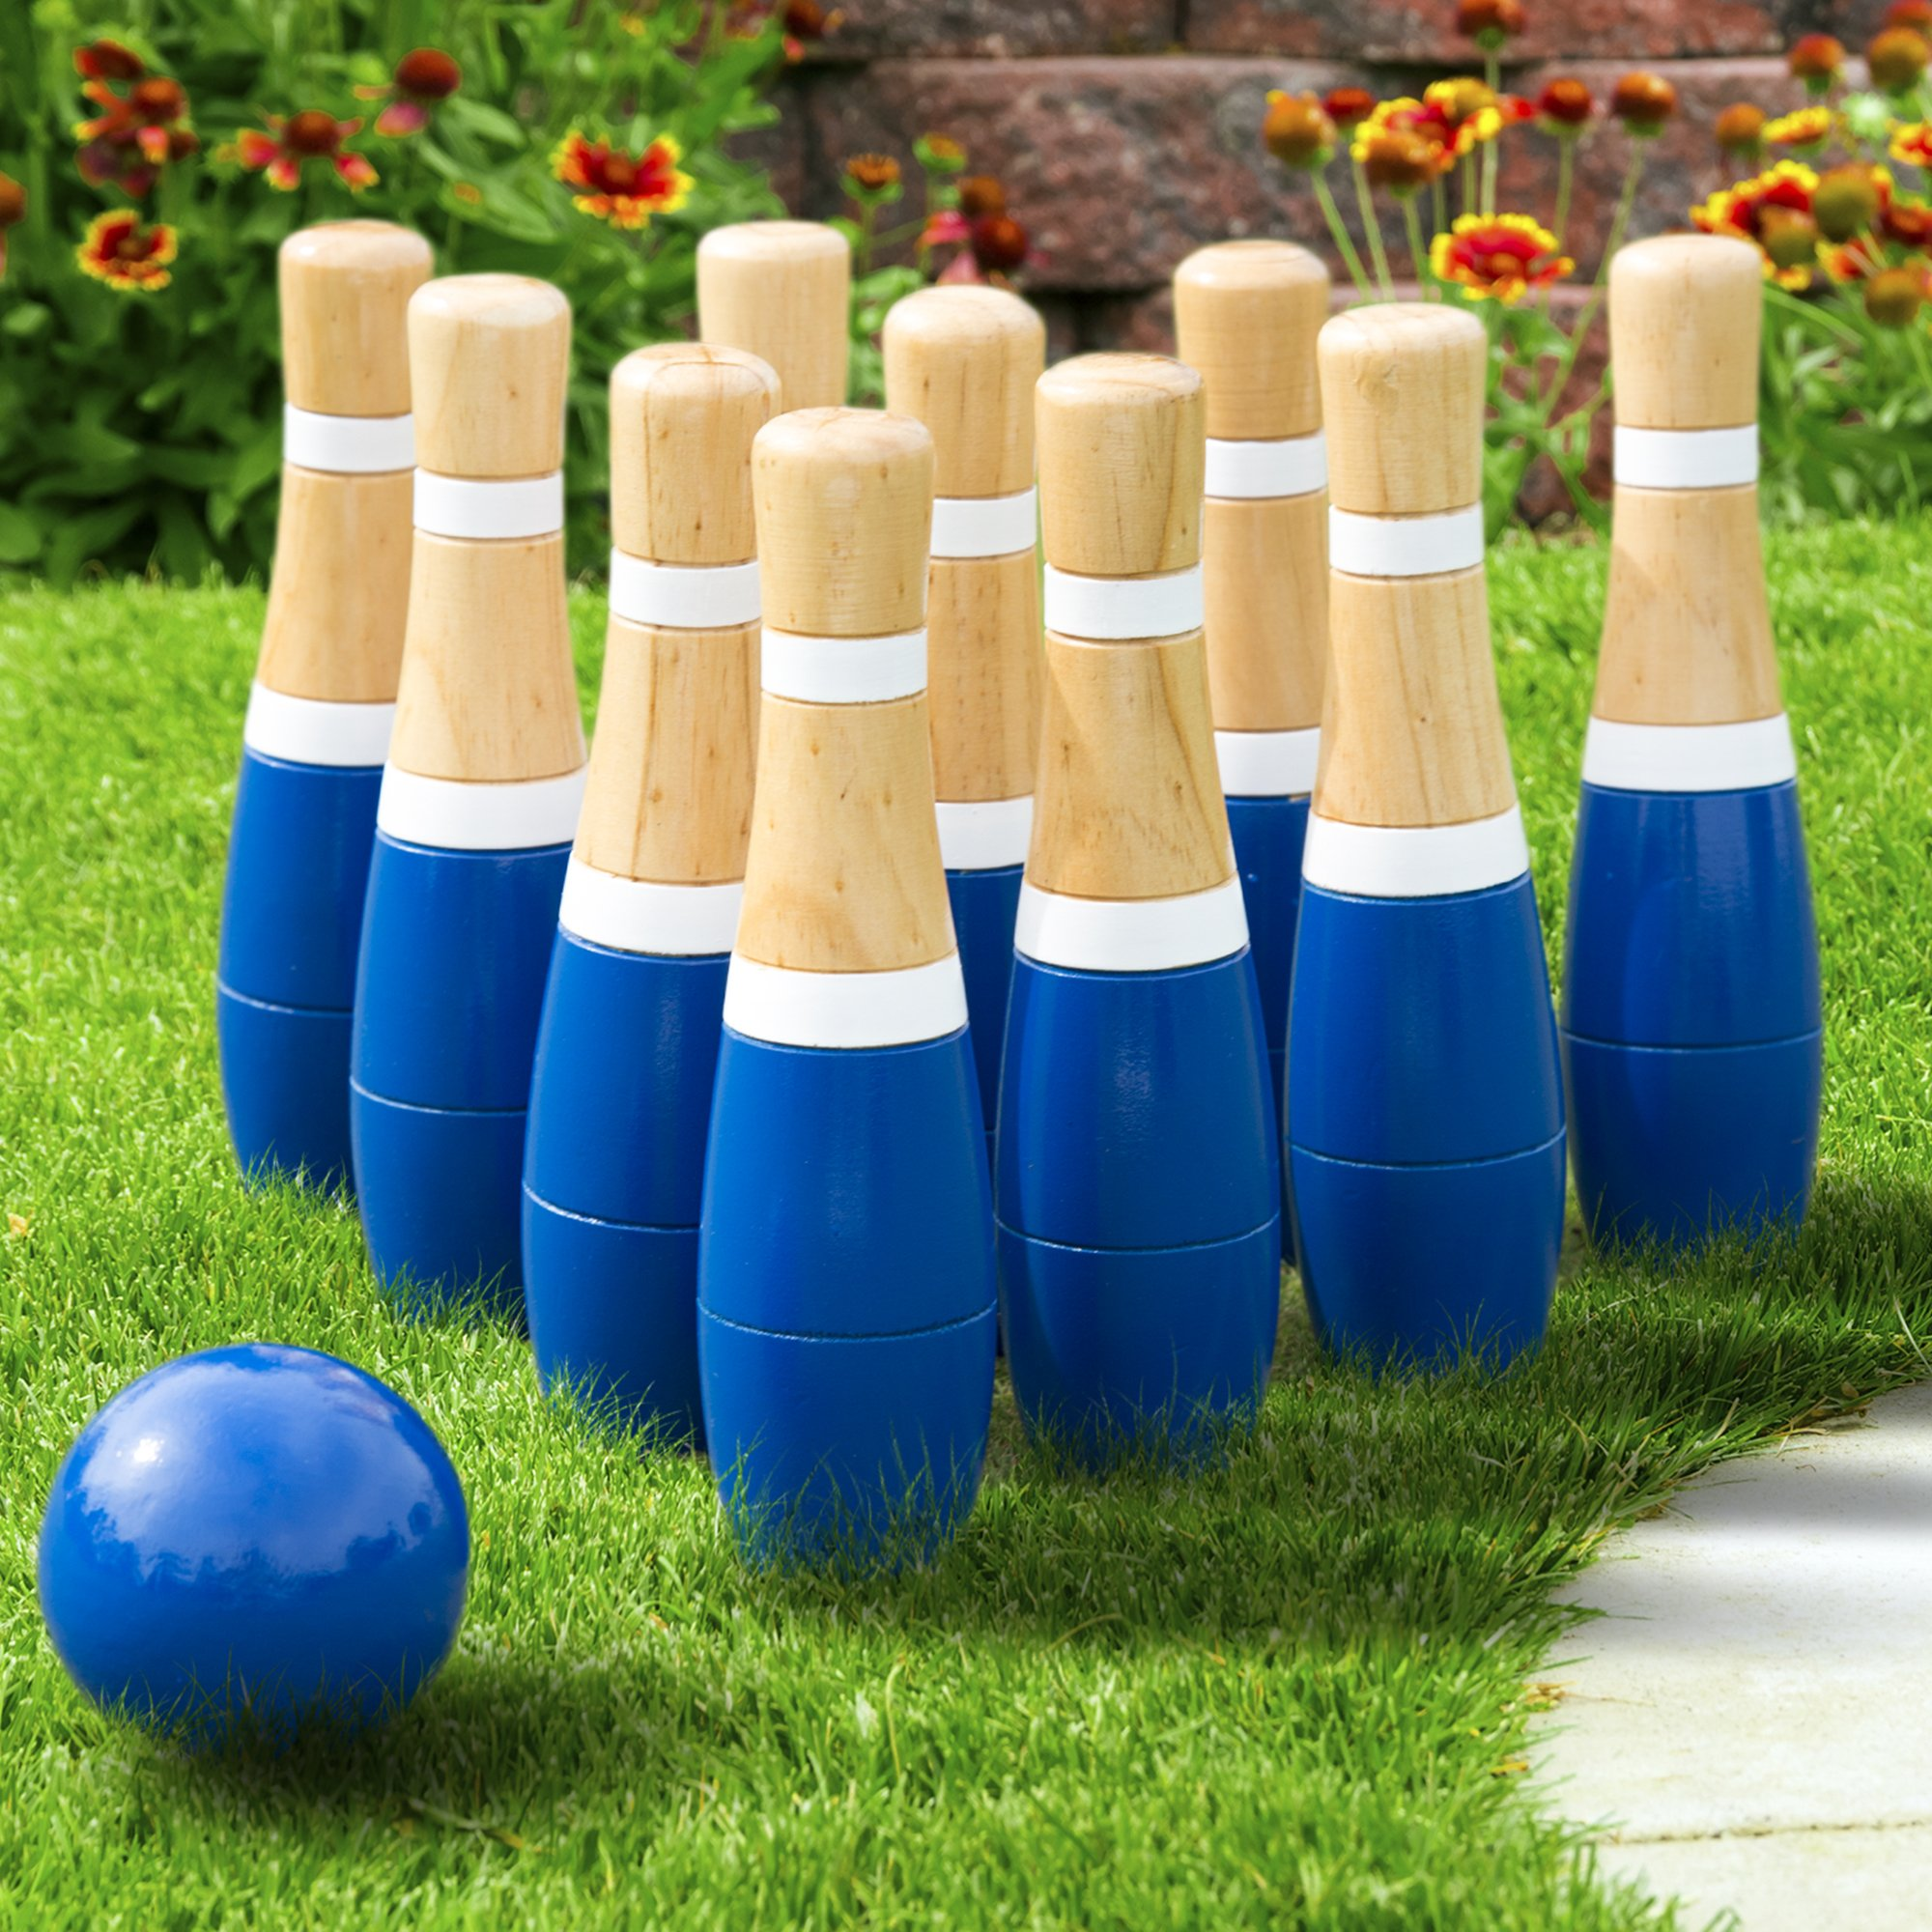 Lawn Bowling Game/Skittle Ball- Indoor and Outdoor Fun for Toddlers, Kids, Adults -10 Wooden Pins, 2 Balls, and Mesh Bag Set by Hey! Play! (8 Inch) by Hey! Play!